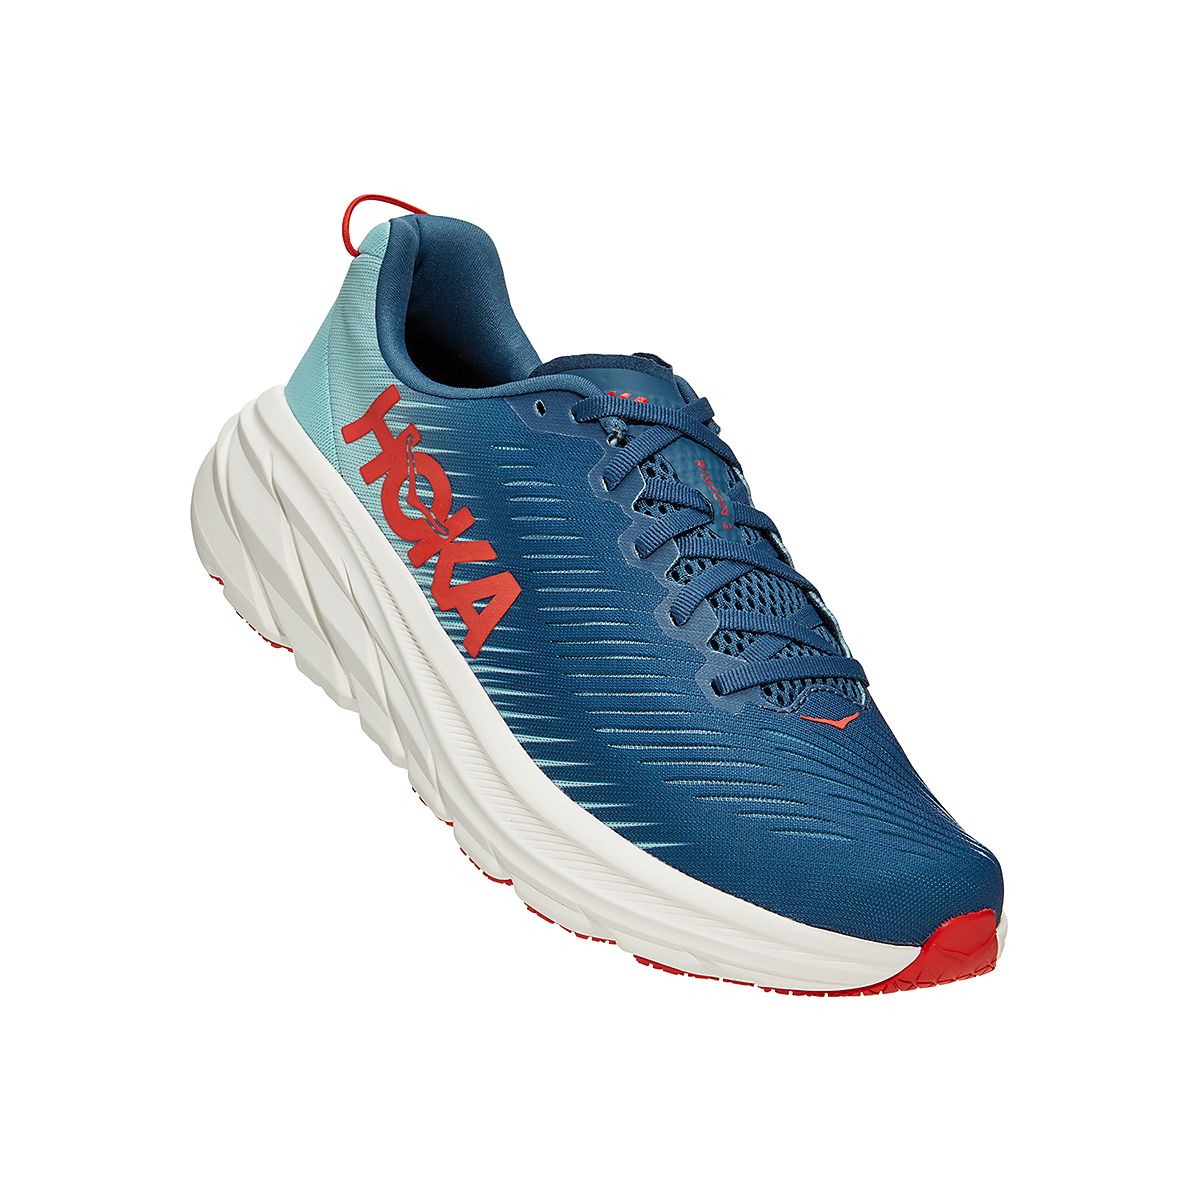 Men's Hoka One One Rincon 3 Running Shoe - Color: Real Teal/Eggshell Blue - Size: 7 - Width: Regular, Real Teal/Eggshell Blue, large, image 2